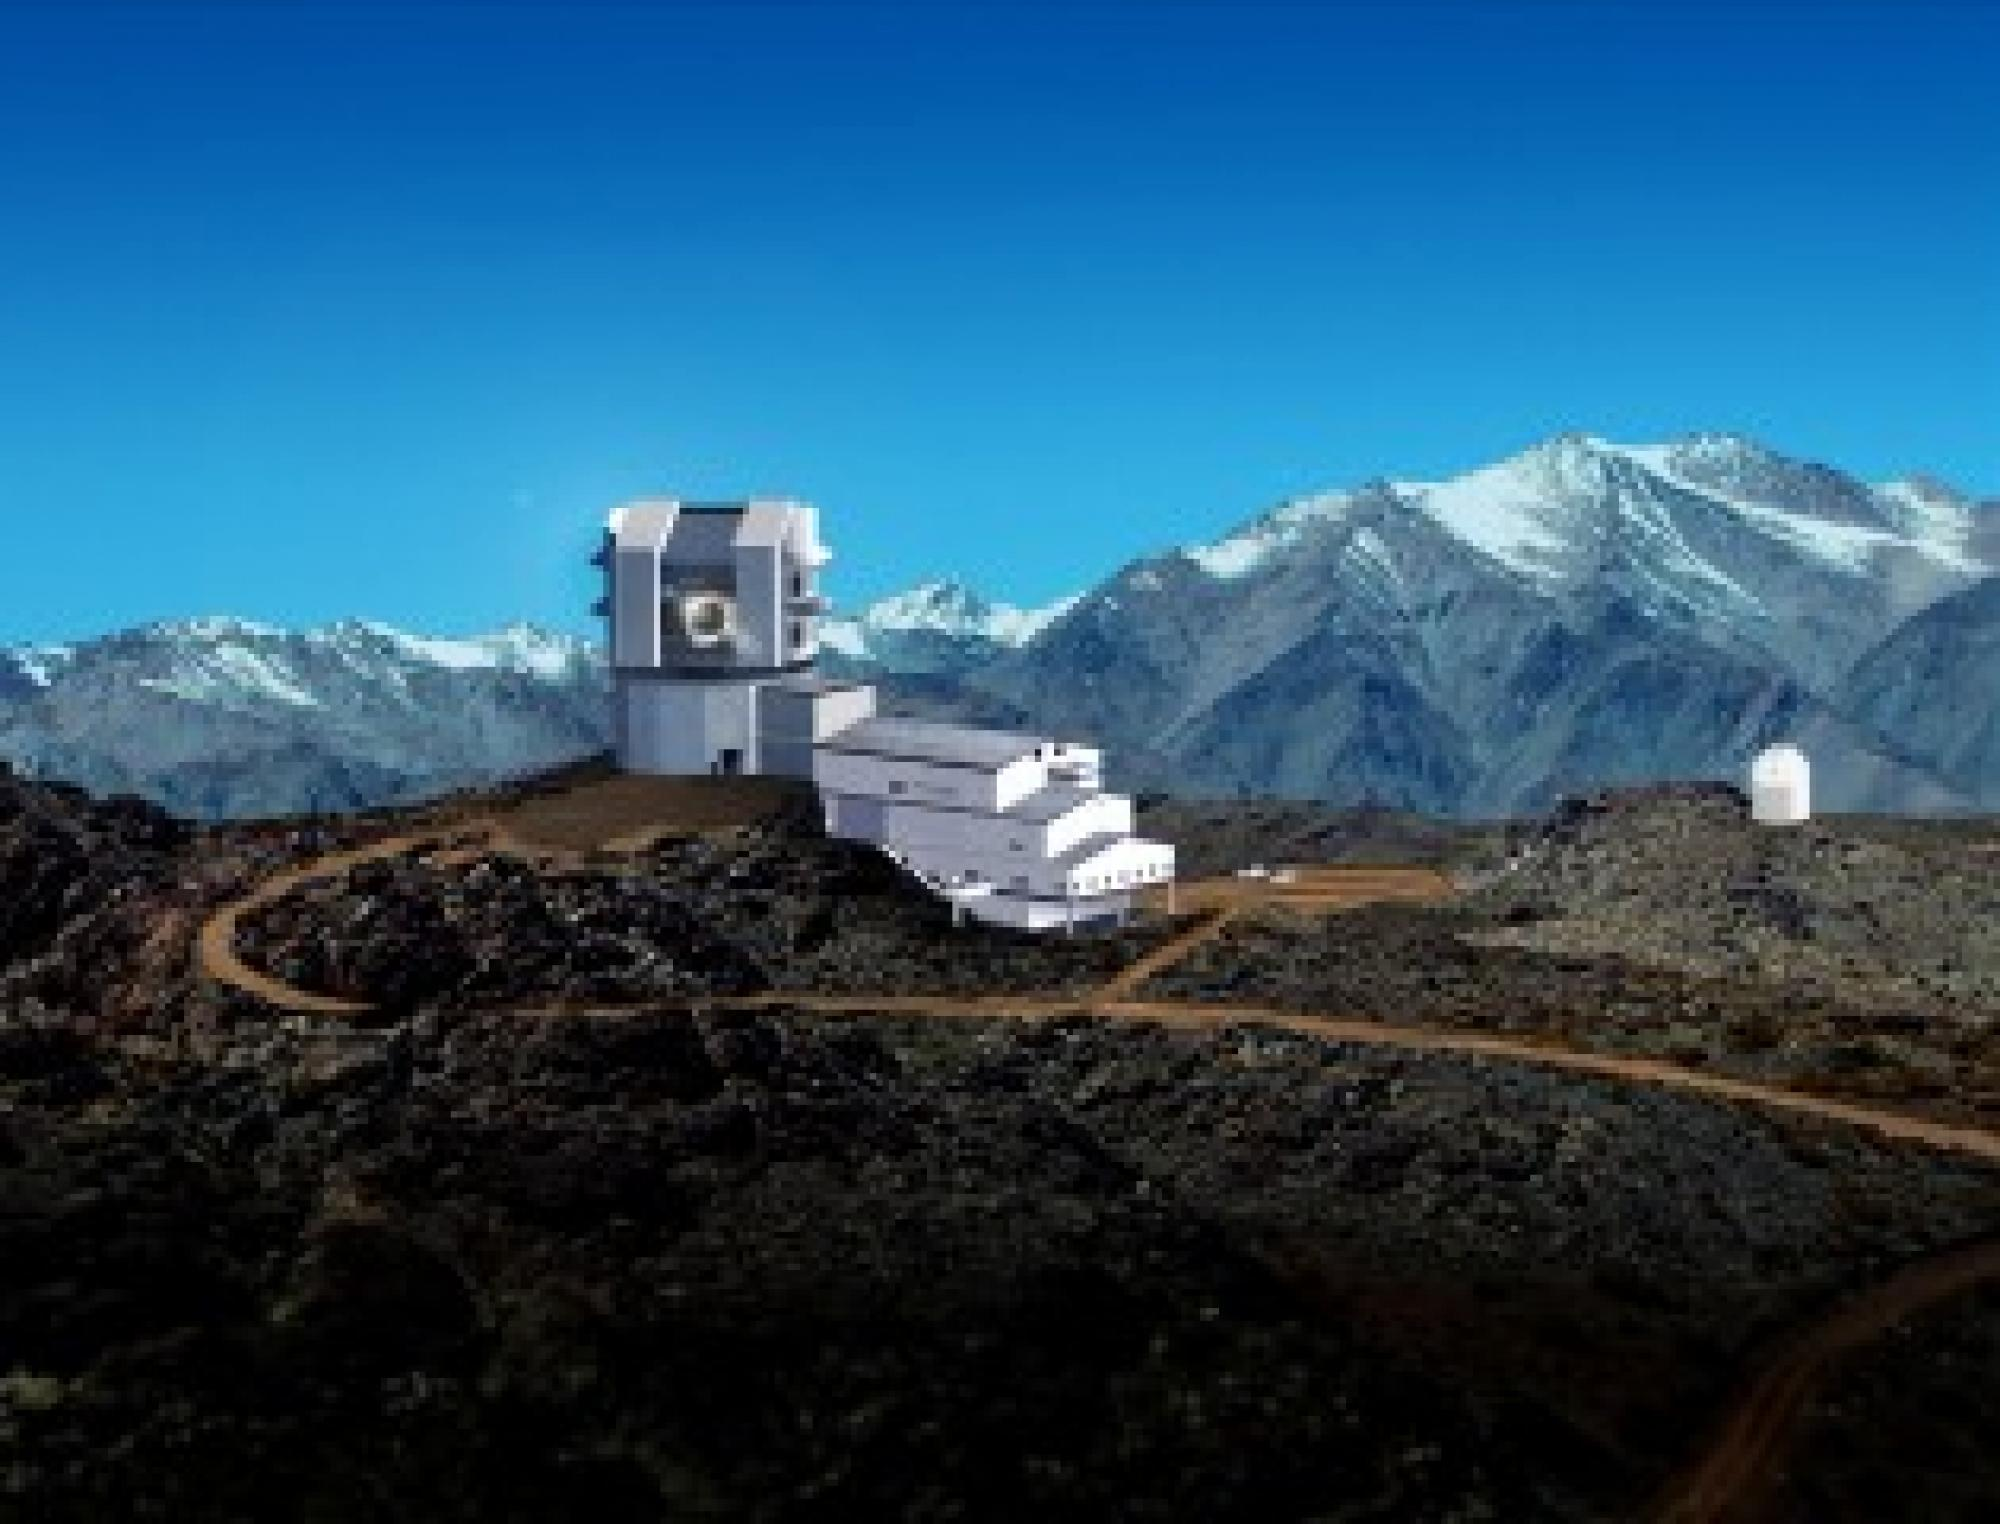 Google Inc. has joined with nineteen other  organizations to build the Large Synoptic Survey  Telescope, scheduled to see first light atop Cerro  Pach